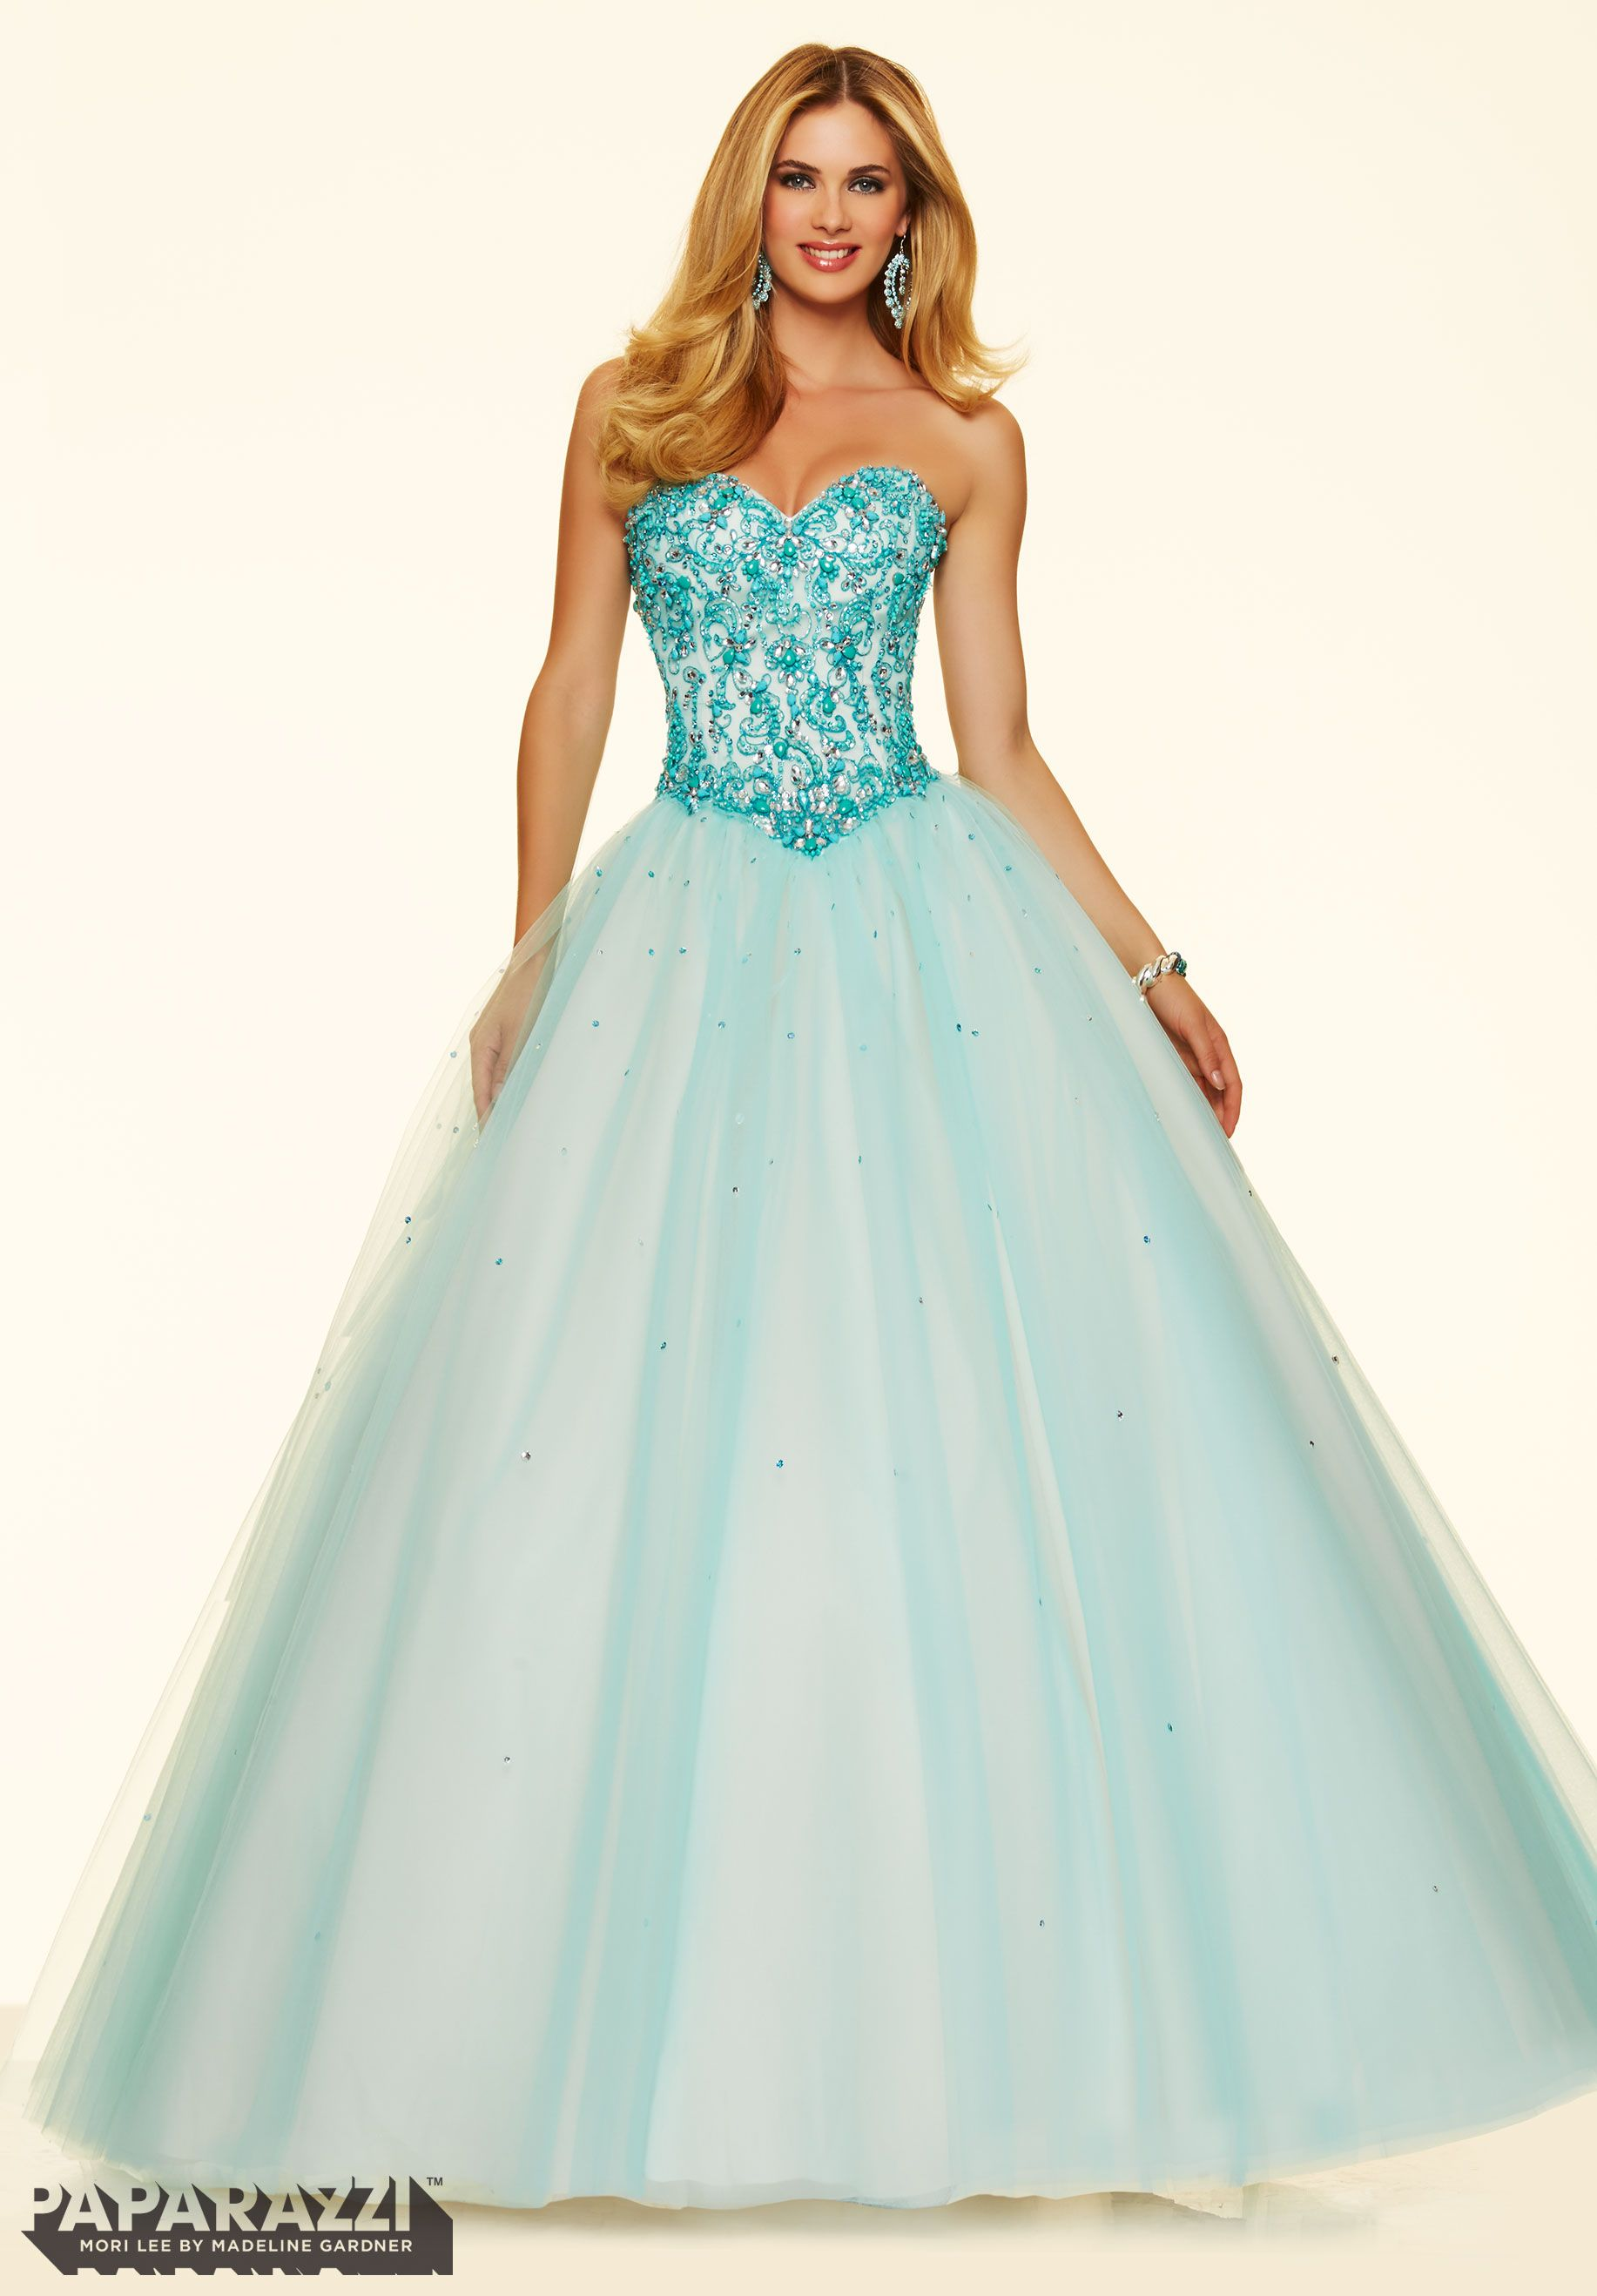 Prom dresses by Paparazzi Prom Crystal and Turquoise Stones on a ...